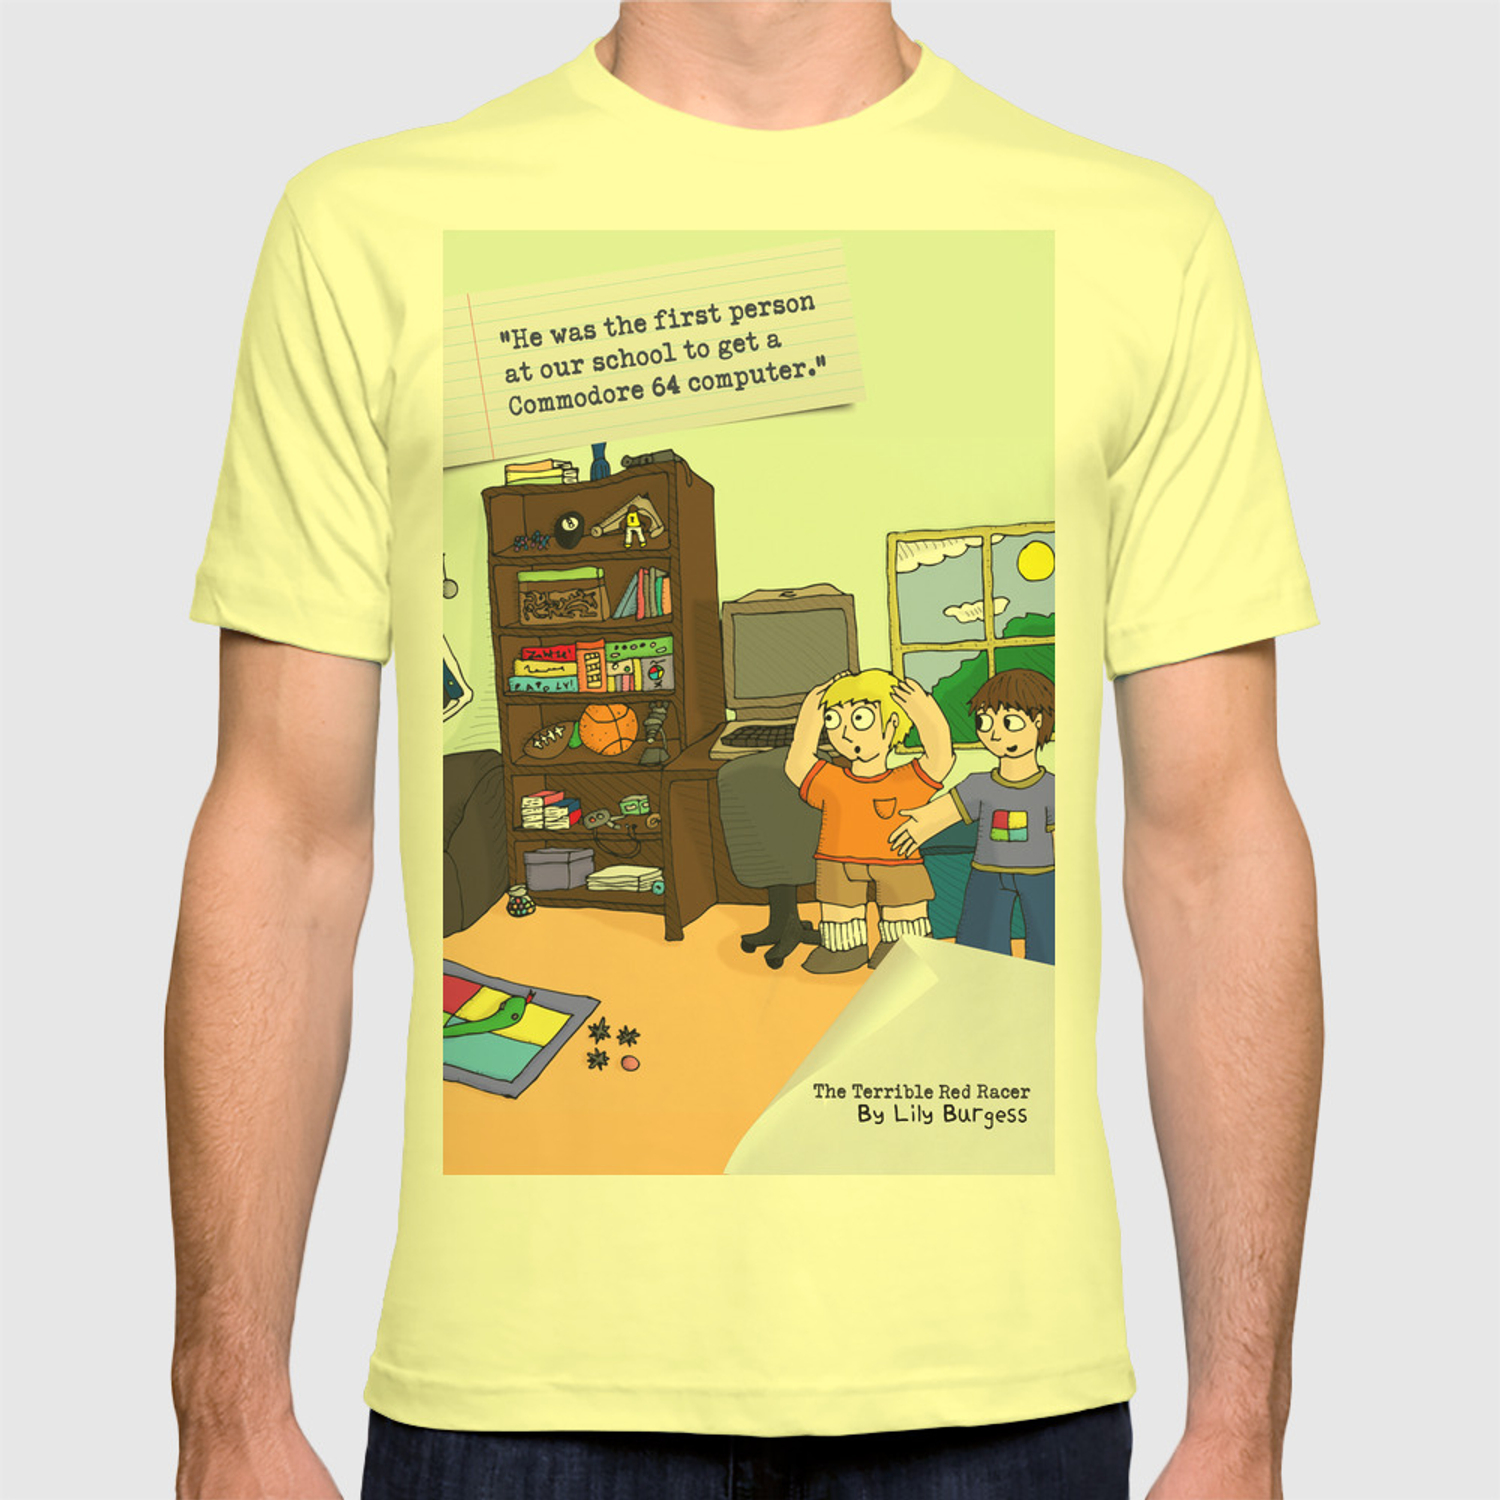 The Terrible Red Racer - Commodore 64 T-shirt